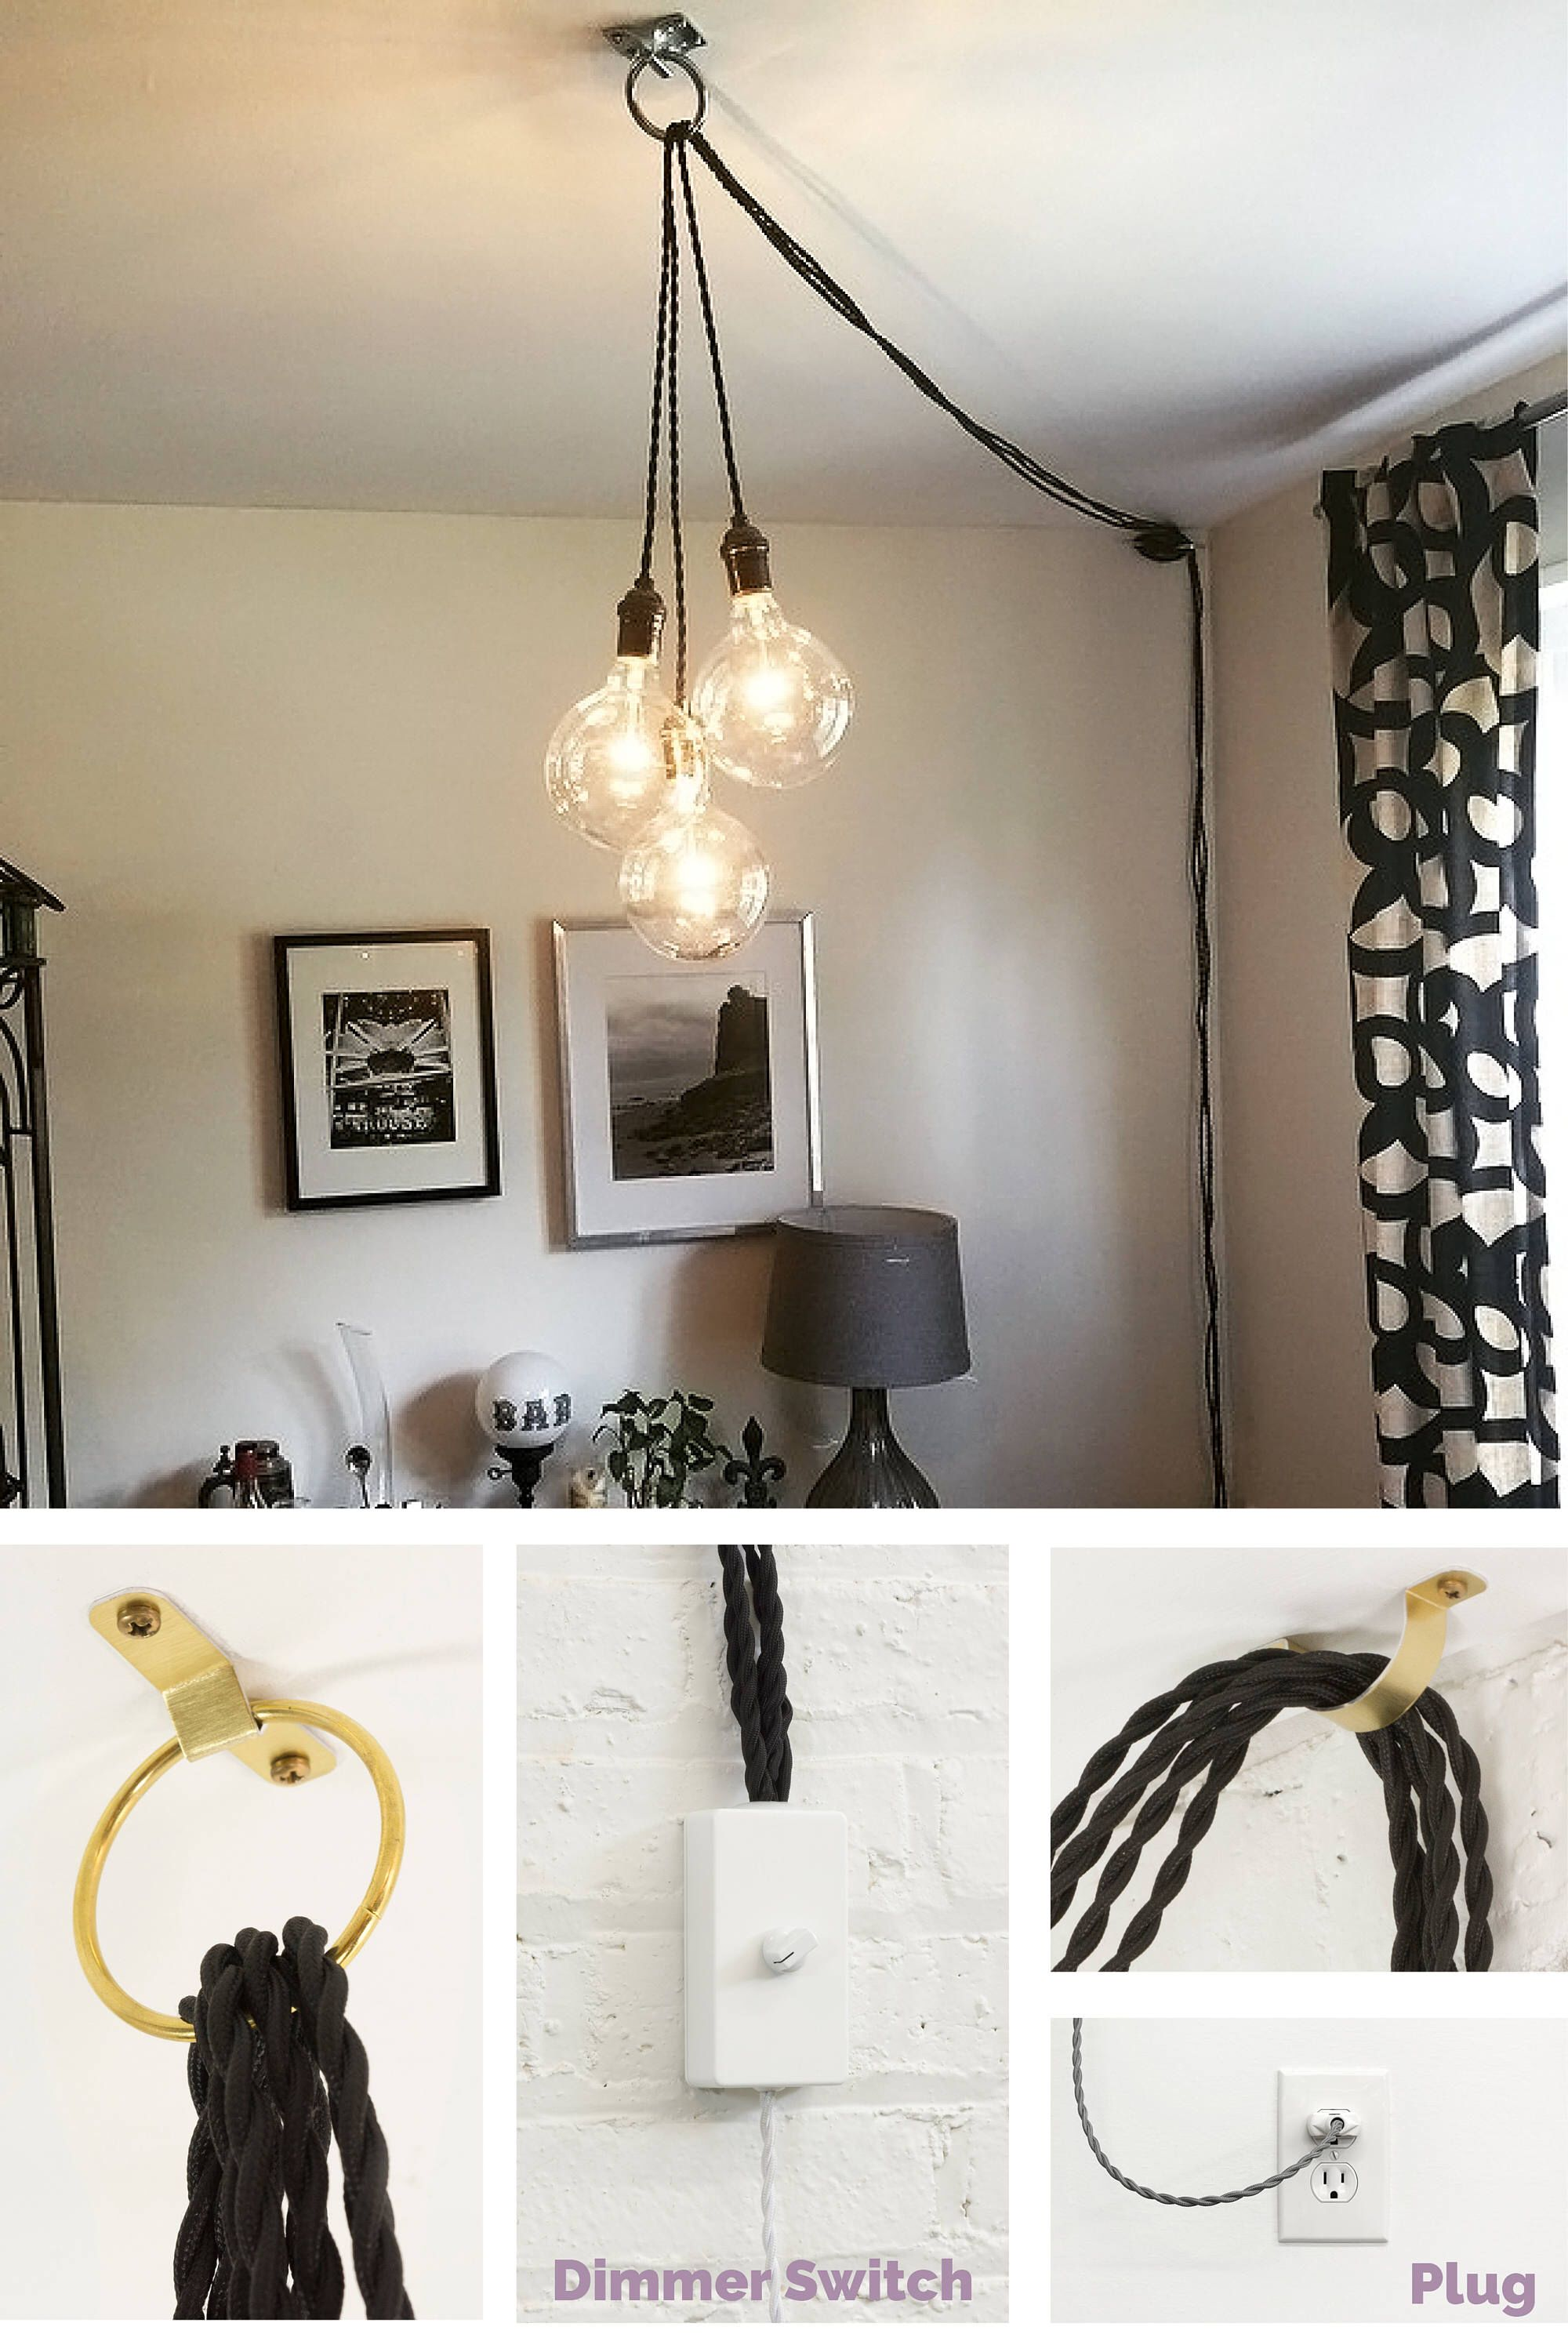 screw bulb lighting ceiling hanging extension copper plug light with socket kiven metal item lights pack edison sconces retro pendant of shopping wall cord vintage in ul lamps lantern online cable glass